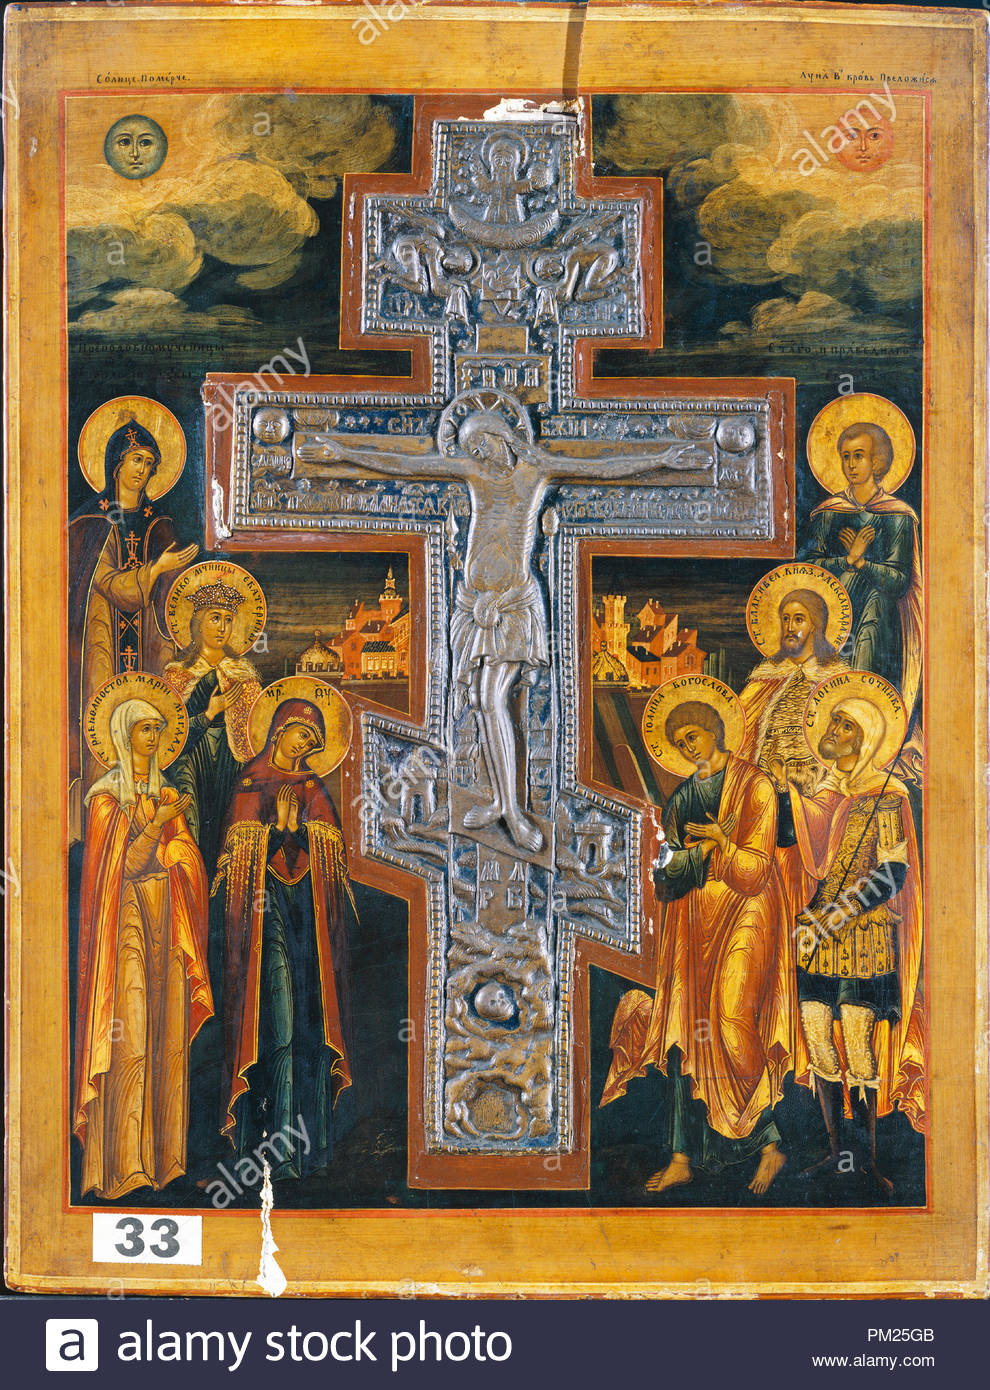 The Crucifixion. Dated: 19th century. Dimensions: overall: 47 x 35.9 x 2.2 cm (18 1/2 x 14 1/8 x 7/8 in.). Medium: oil on wood with inset brass cross. Museum: National Gallery of Art, Washington DC. Author: Russian 19th Century. - Stock Image